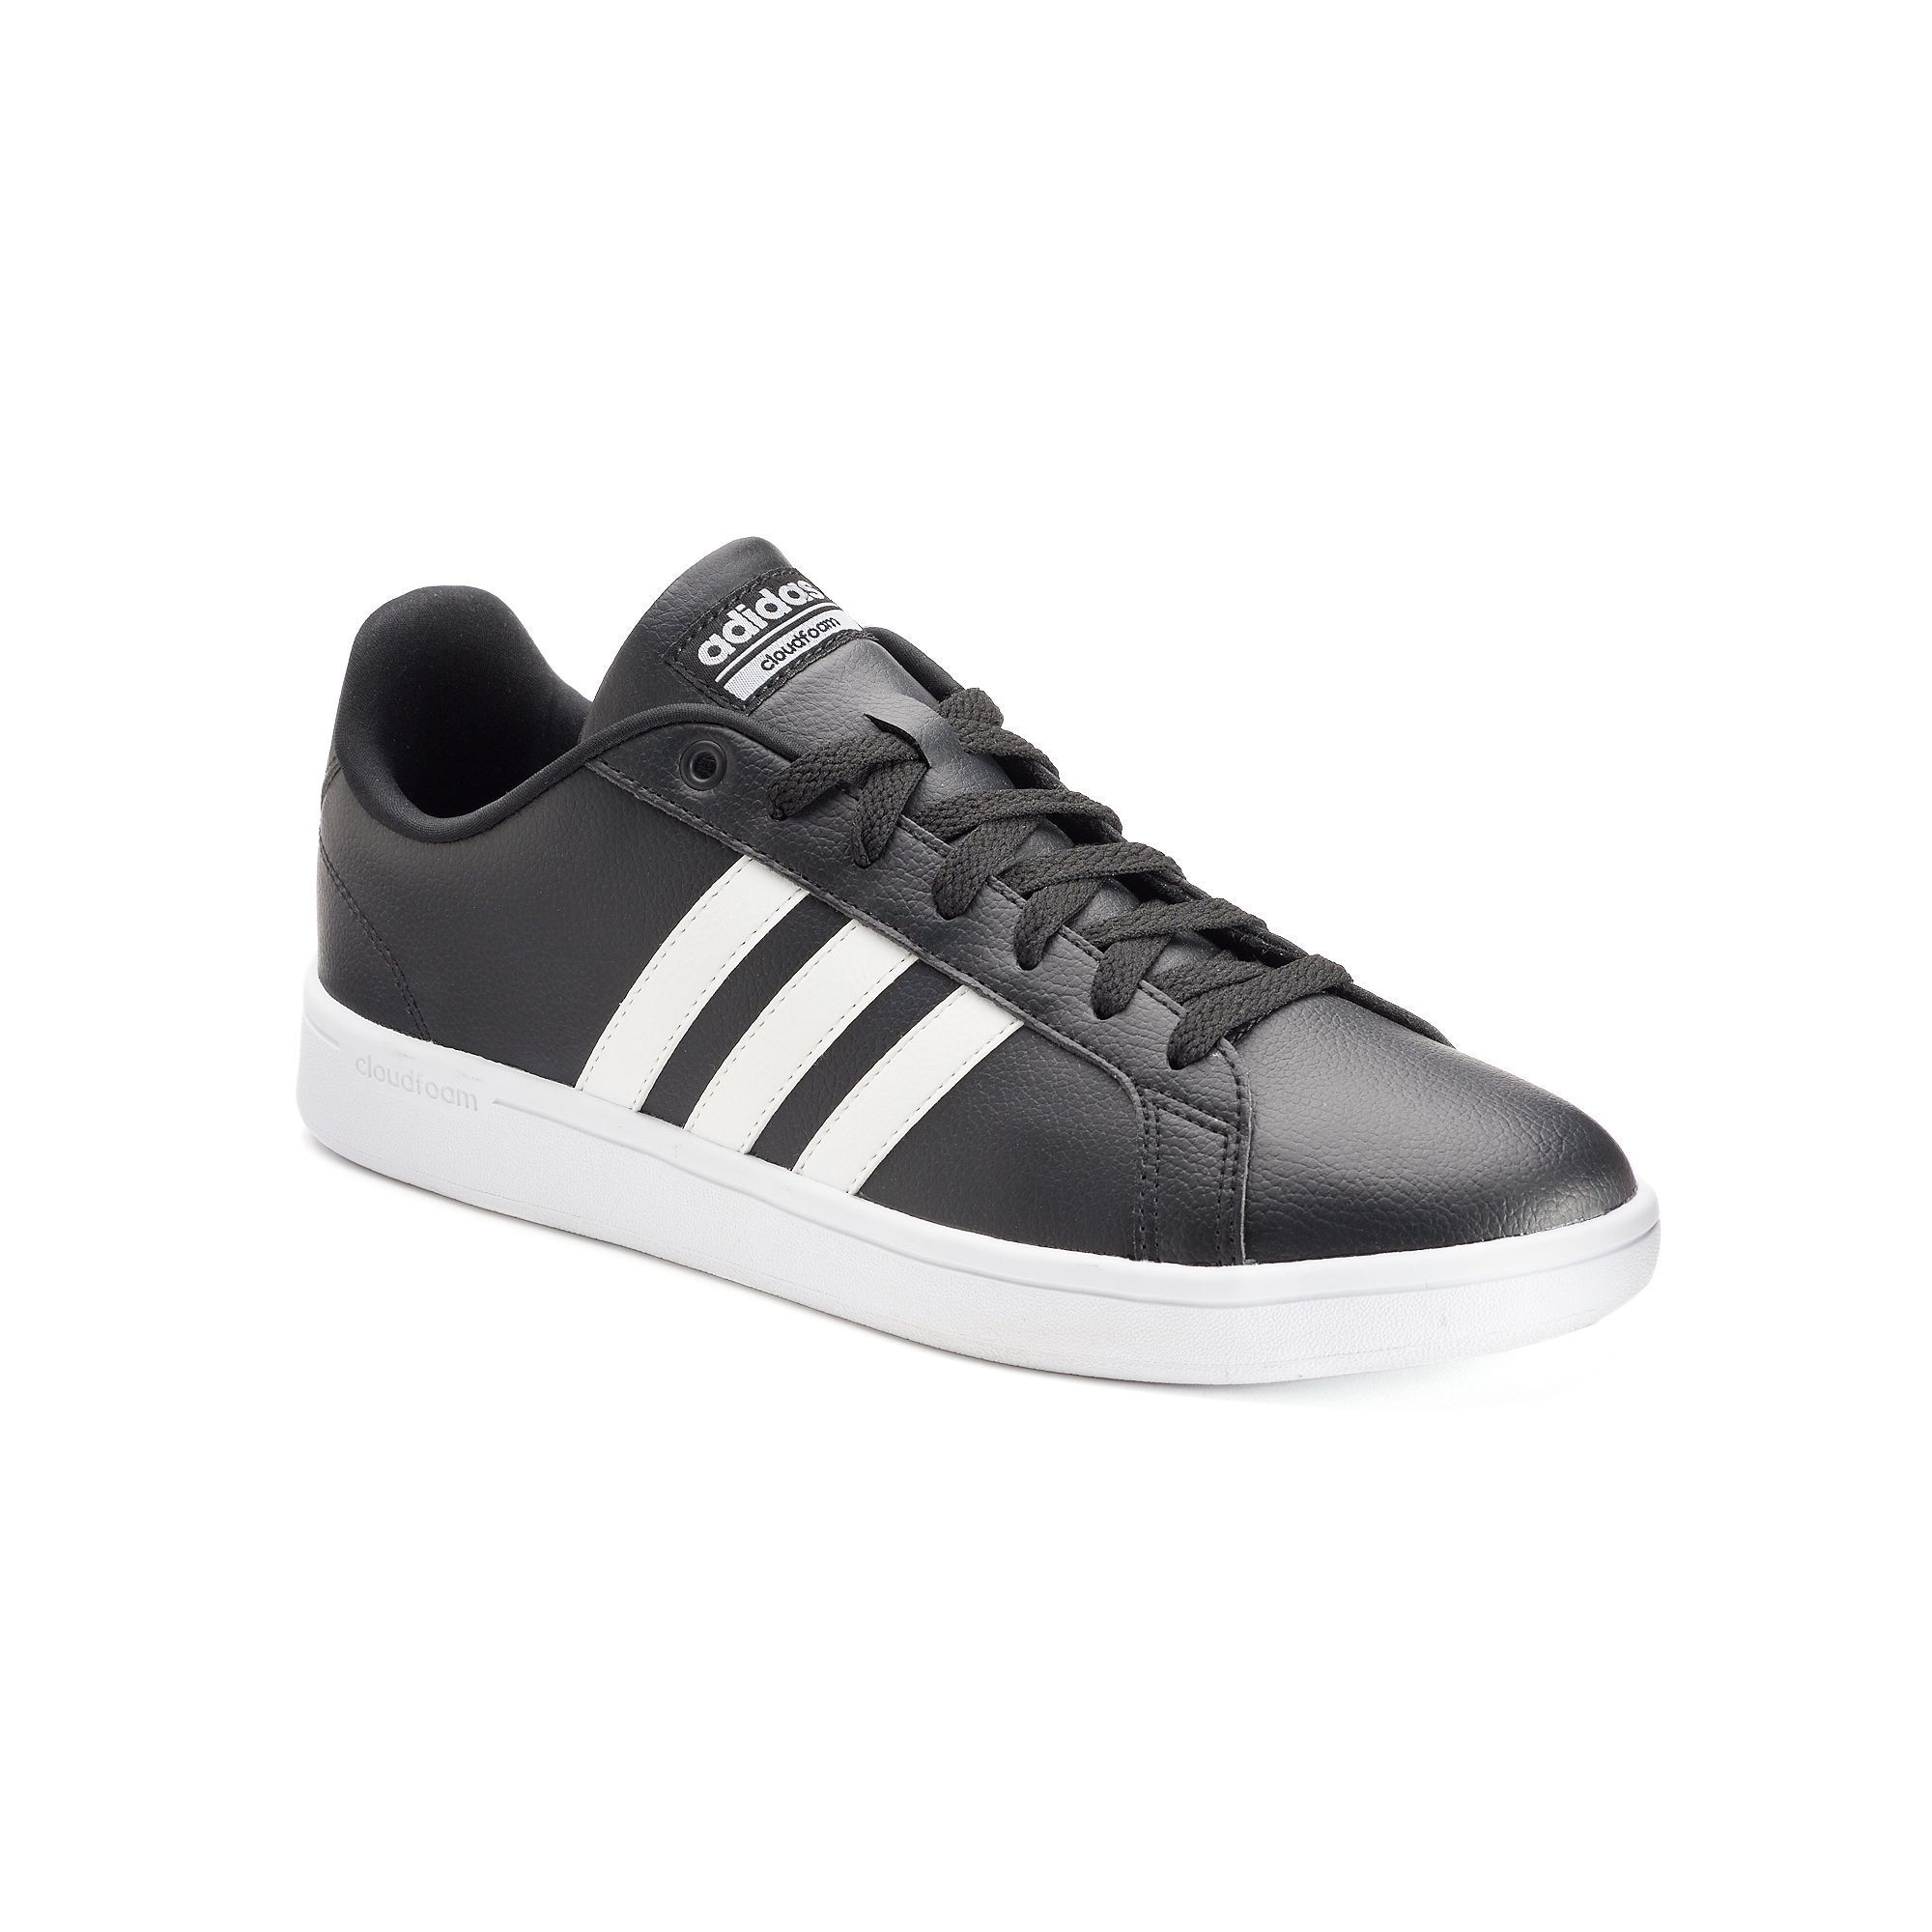 adidas neo cloudfoam advantage mens trainer grey